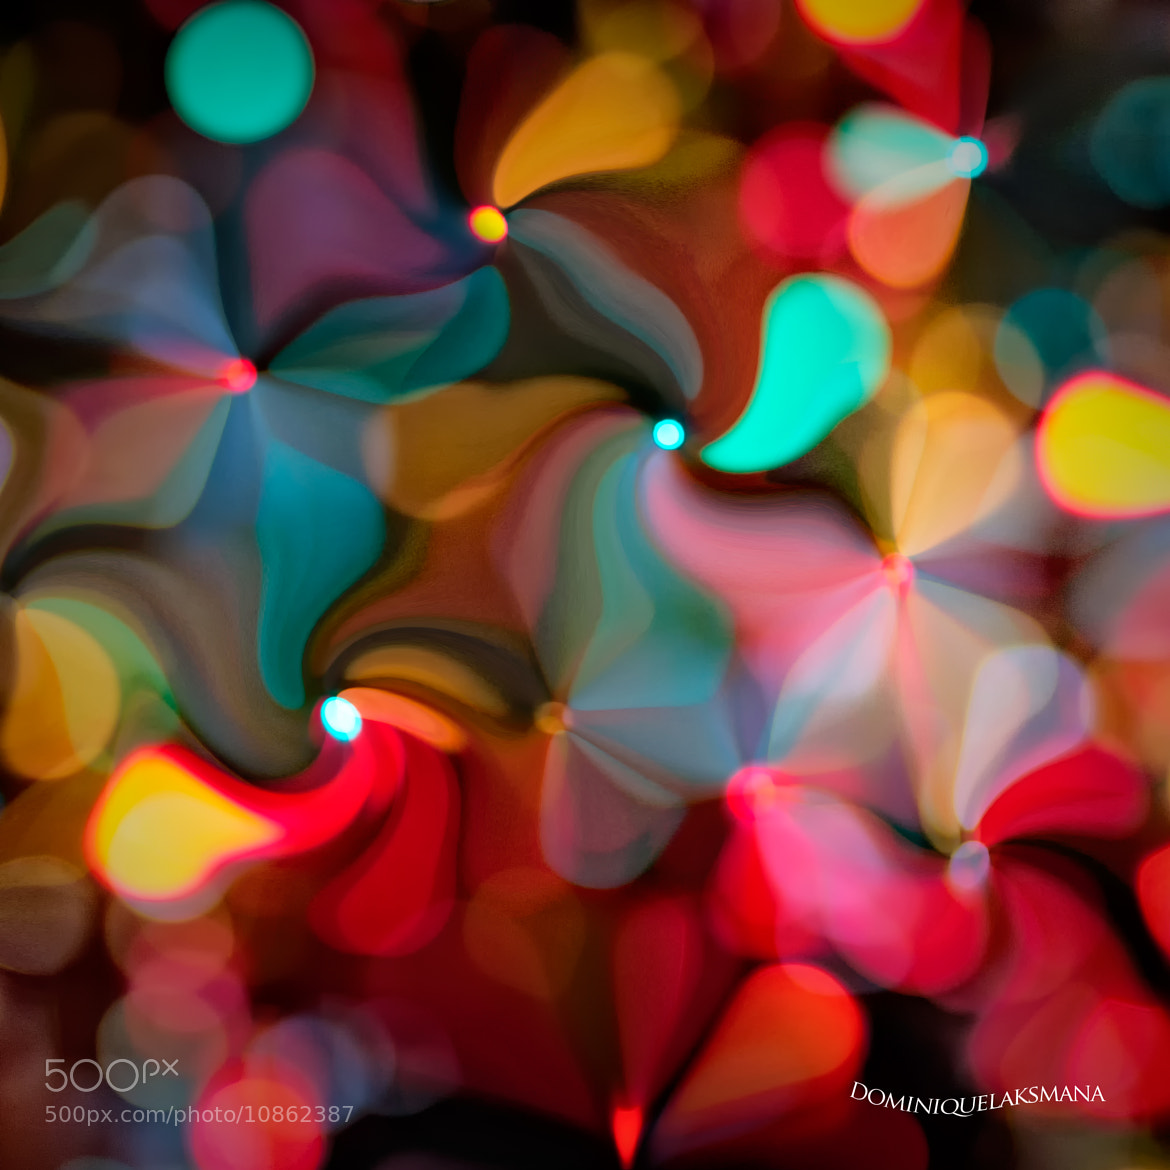 Photograph Flower Light by Dominique Laksmana on 500px